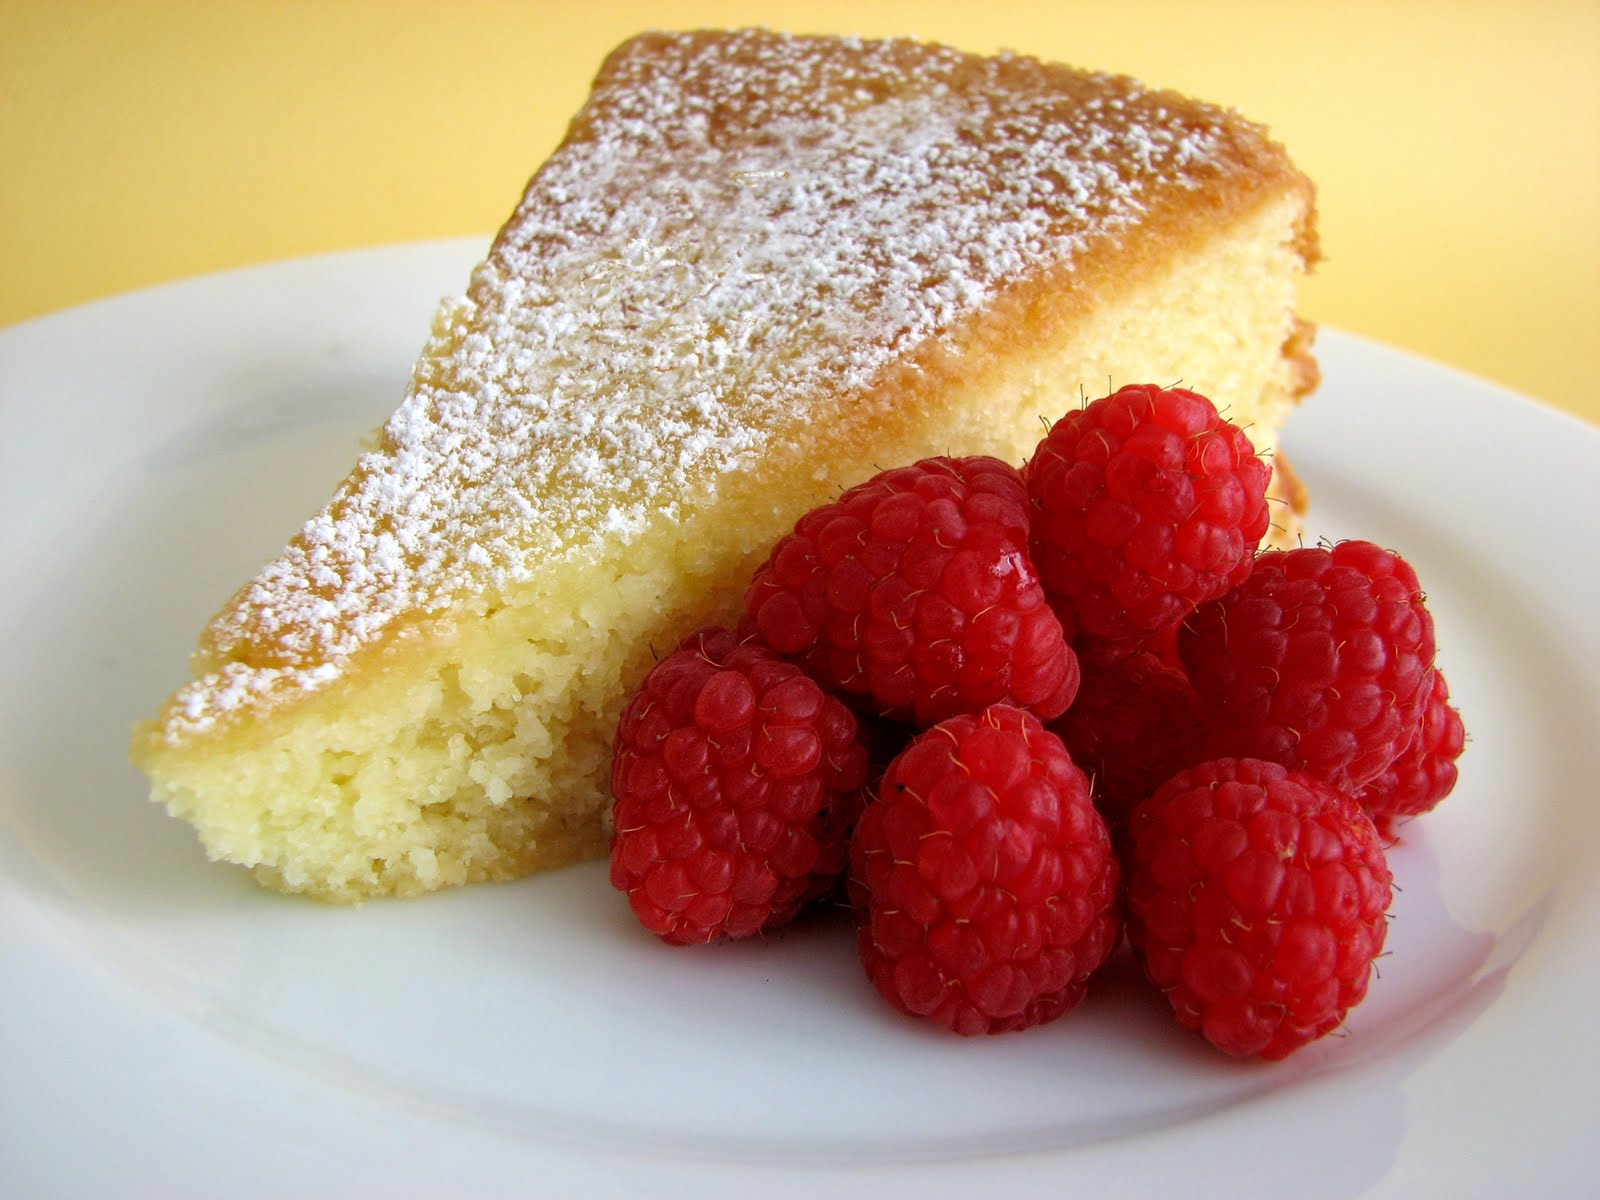 Cake Recipes Using Lemon Curd: :pastry Studio: Lemon Curd Cake